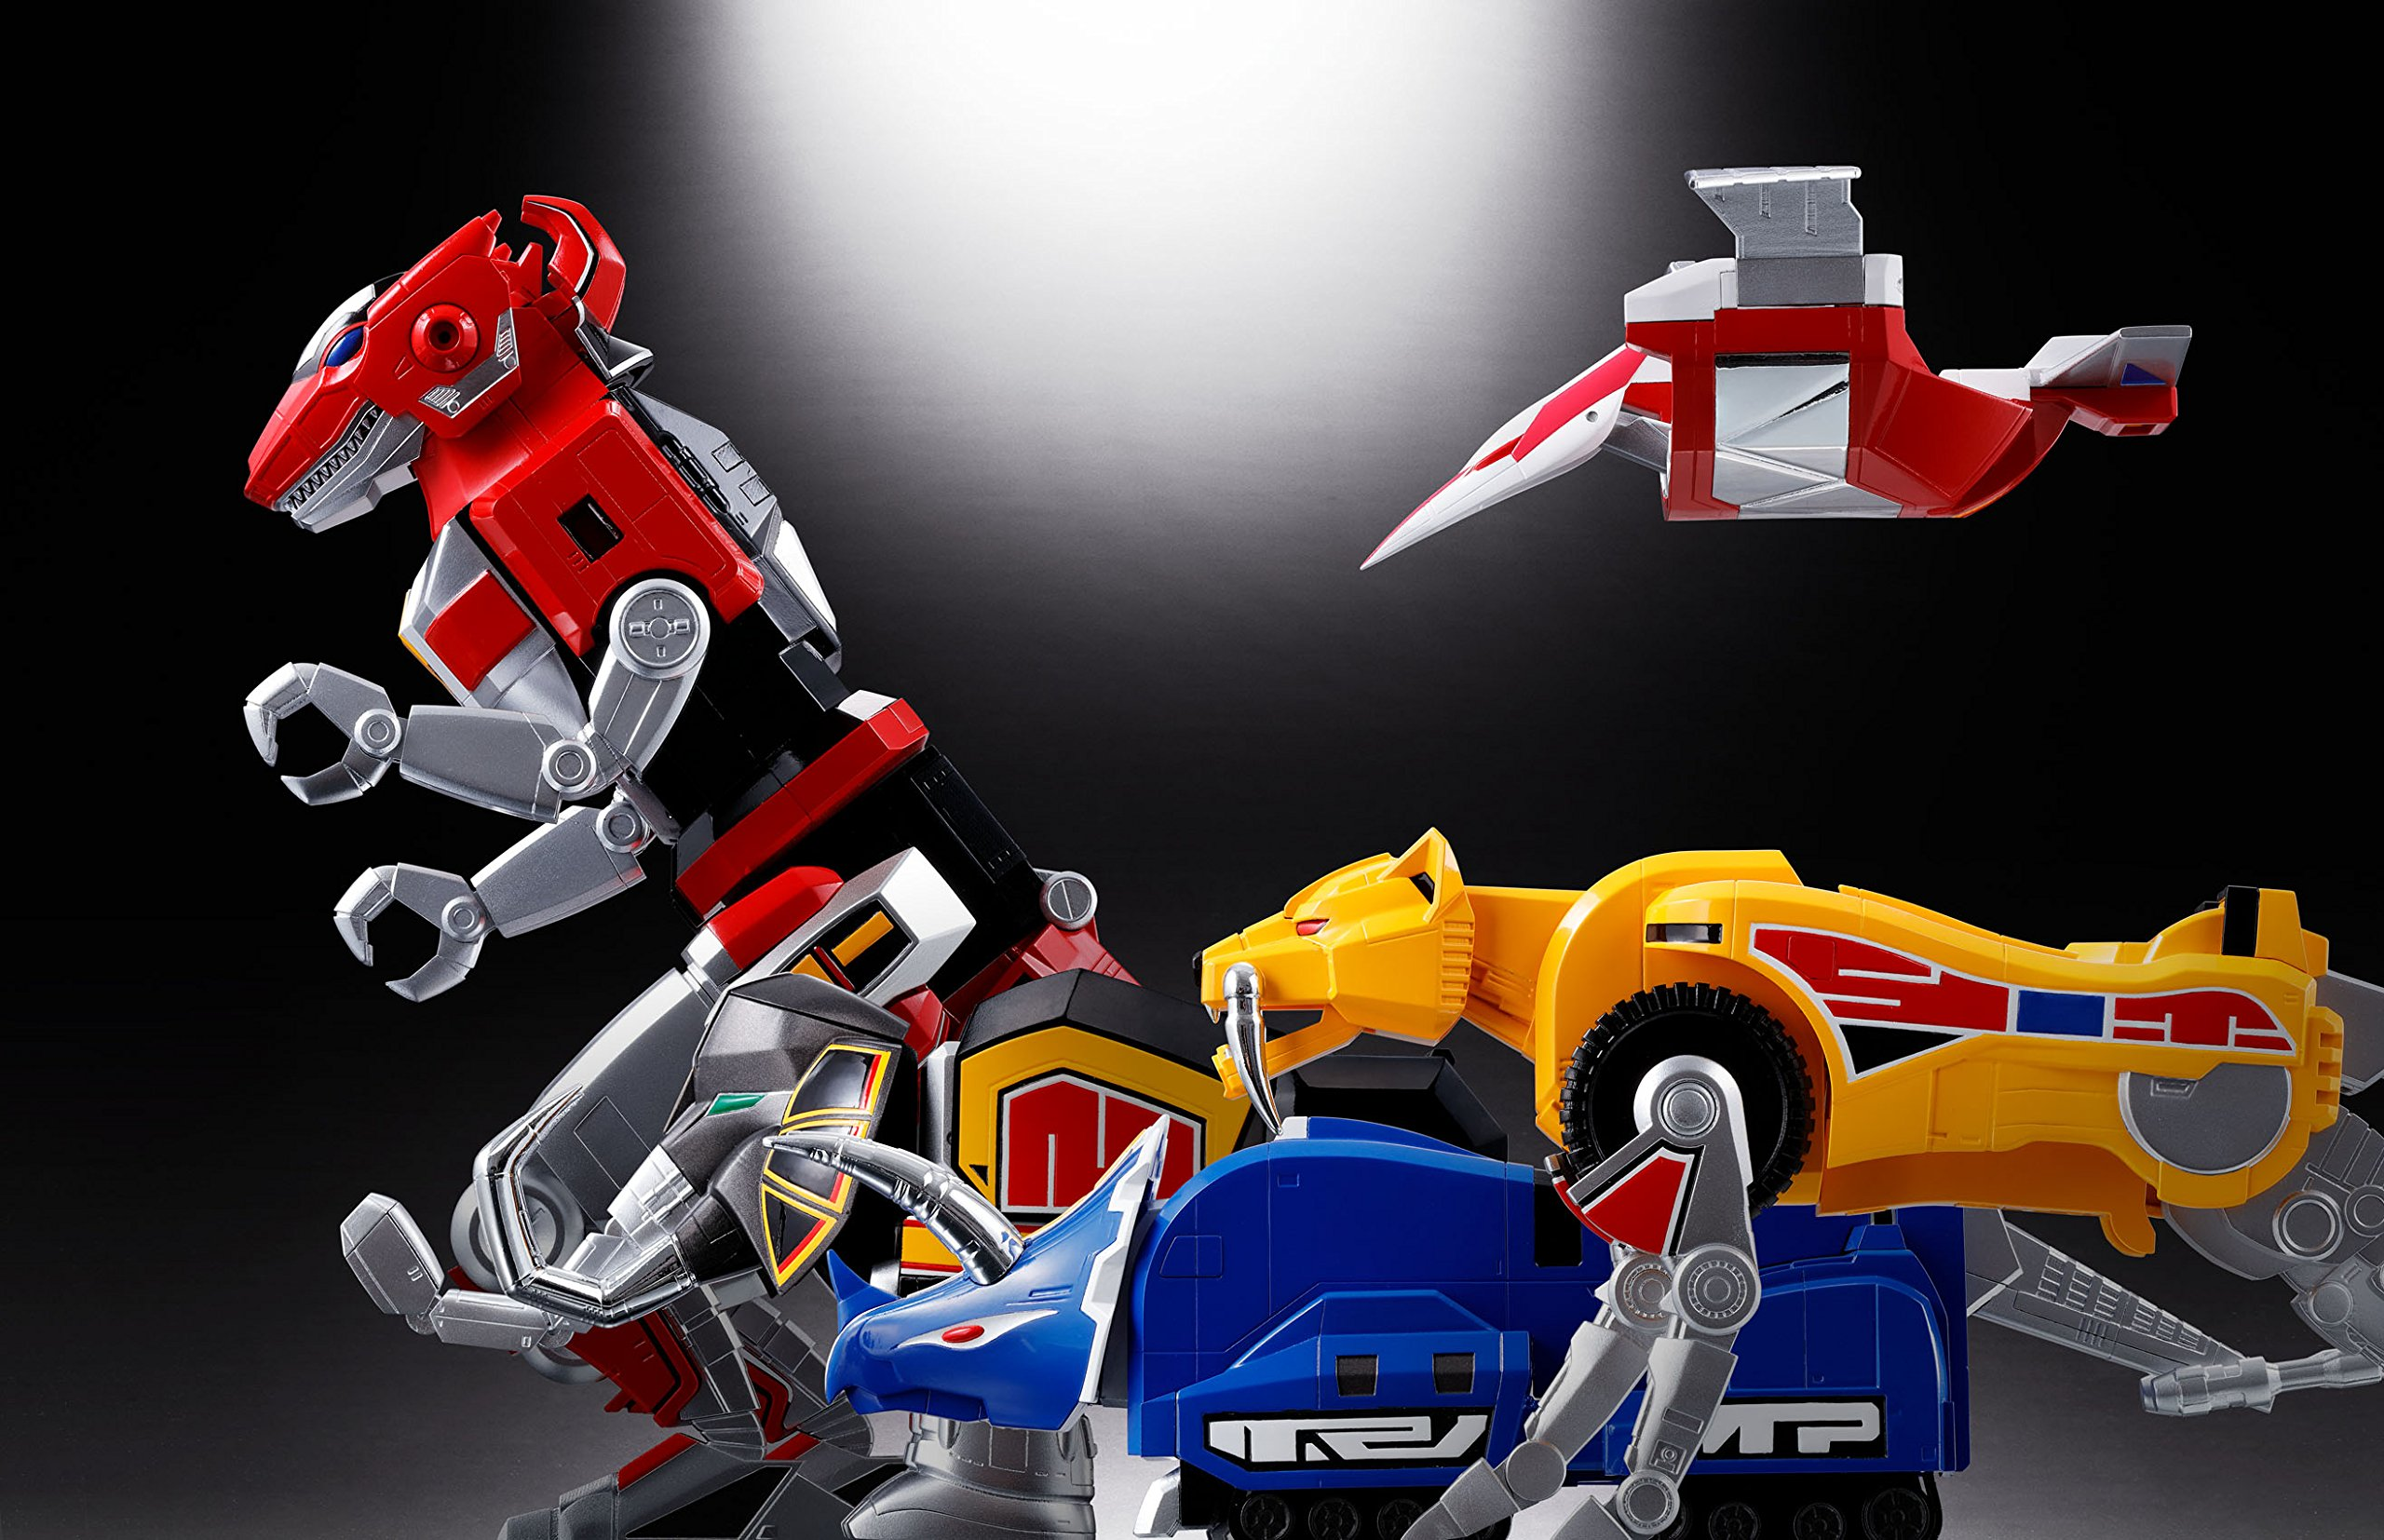 Bandai Tamashii Nations Soul of Chogokin Mighty Morphing Power Rangers Action Figure by Bandai (Image #19)